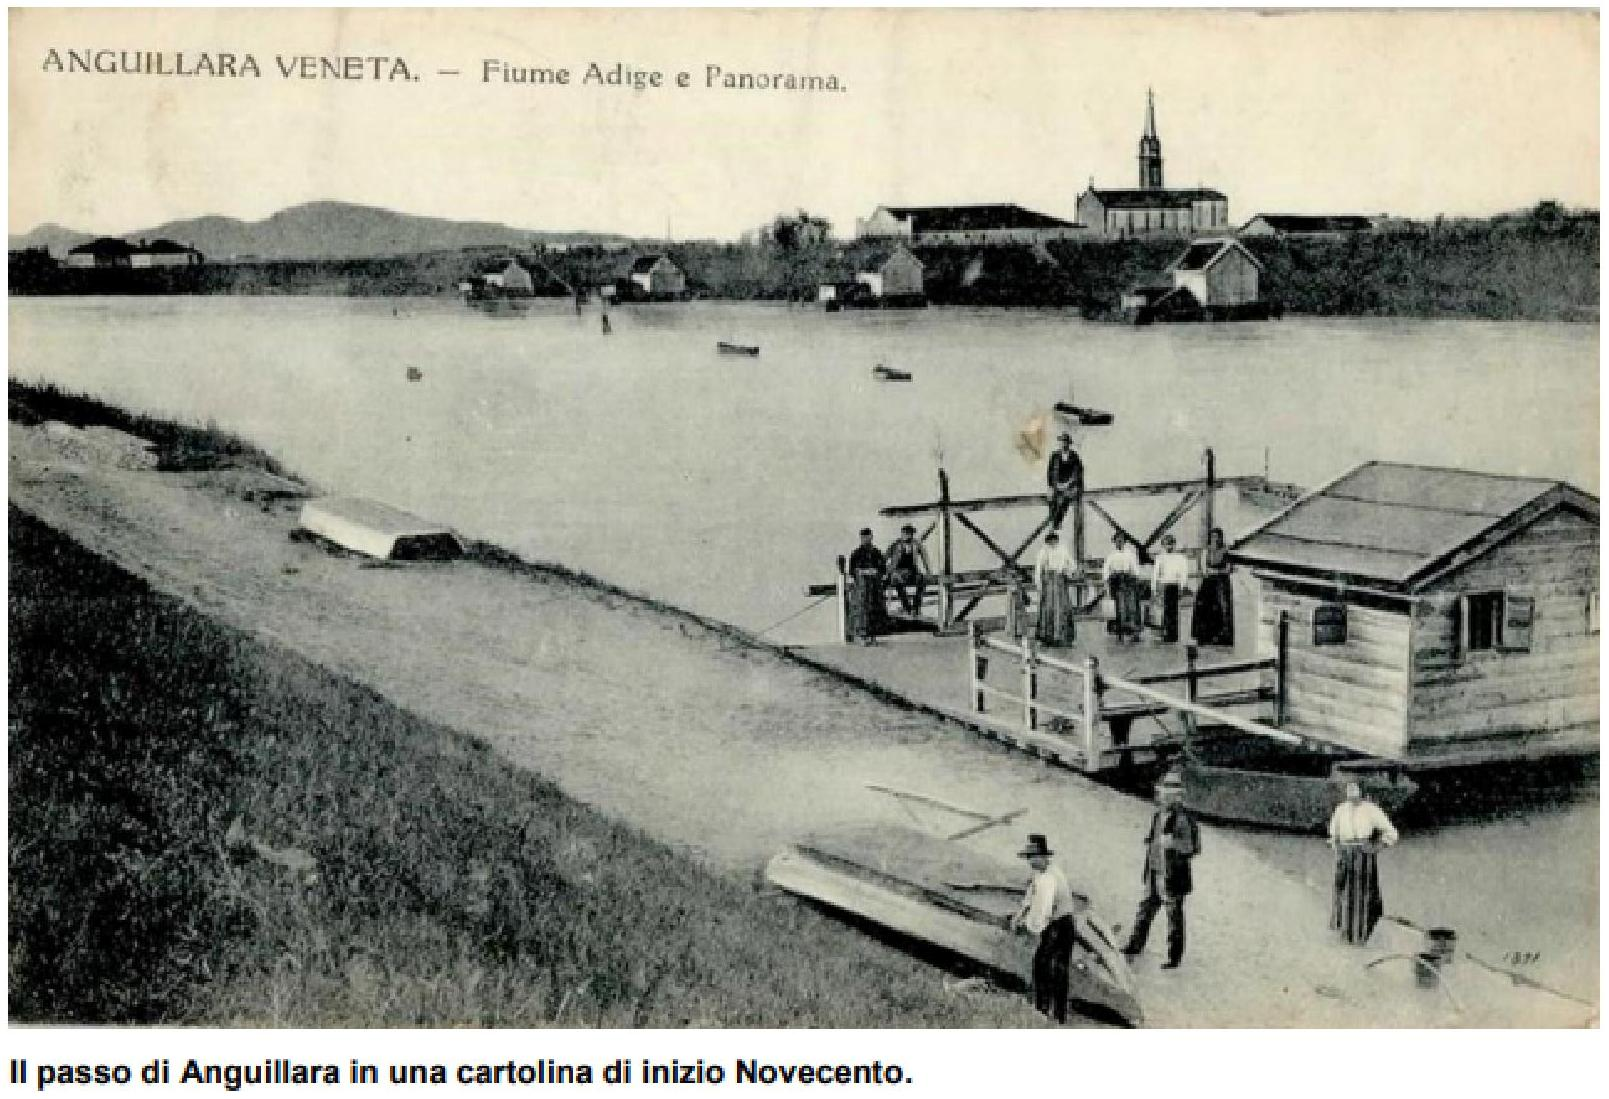 ANGUILLARA (PD) AND THE VIA ROMEA GERMANICA